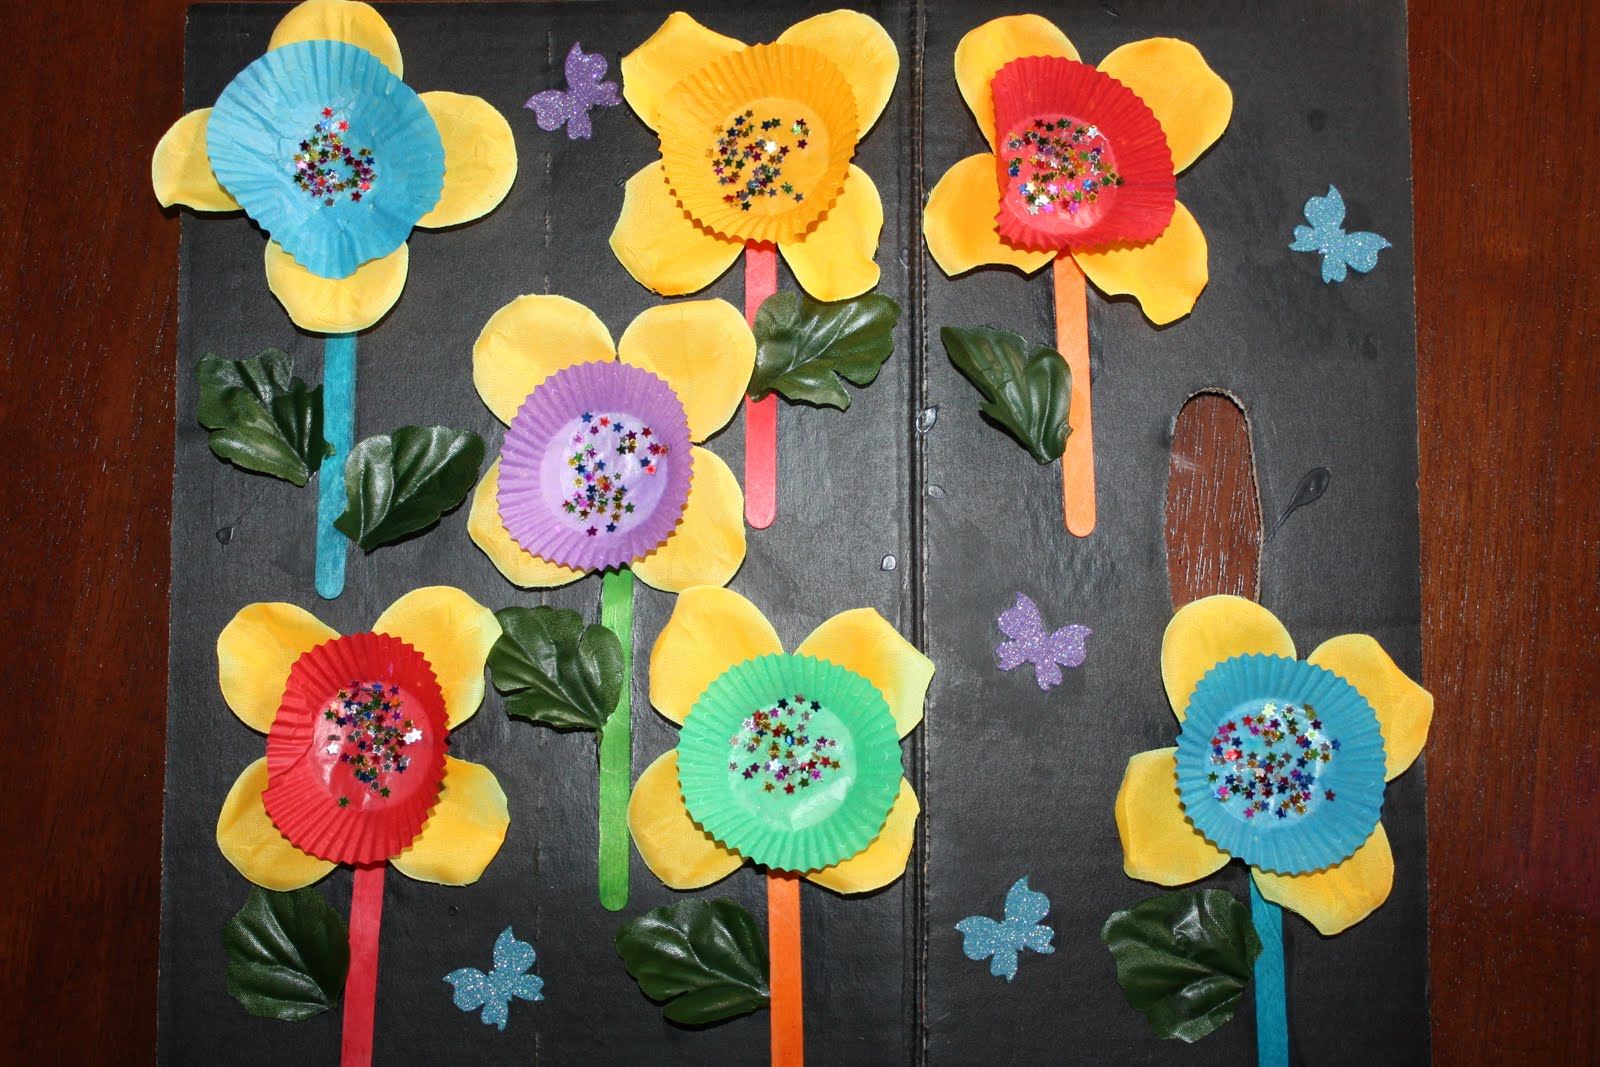 Kids Love Craft Mothers Day Cards With Fake Flower Petals